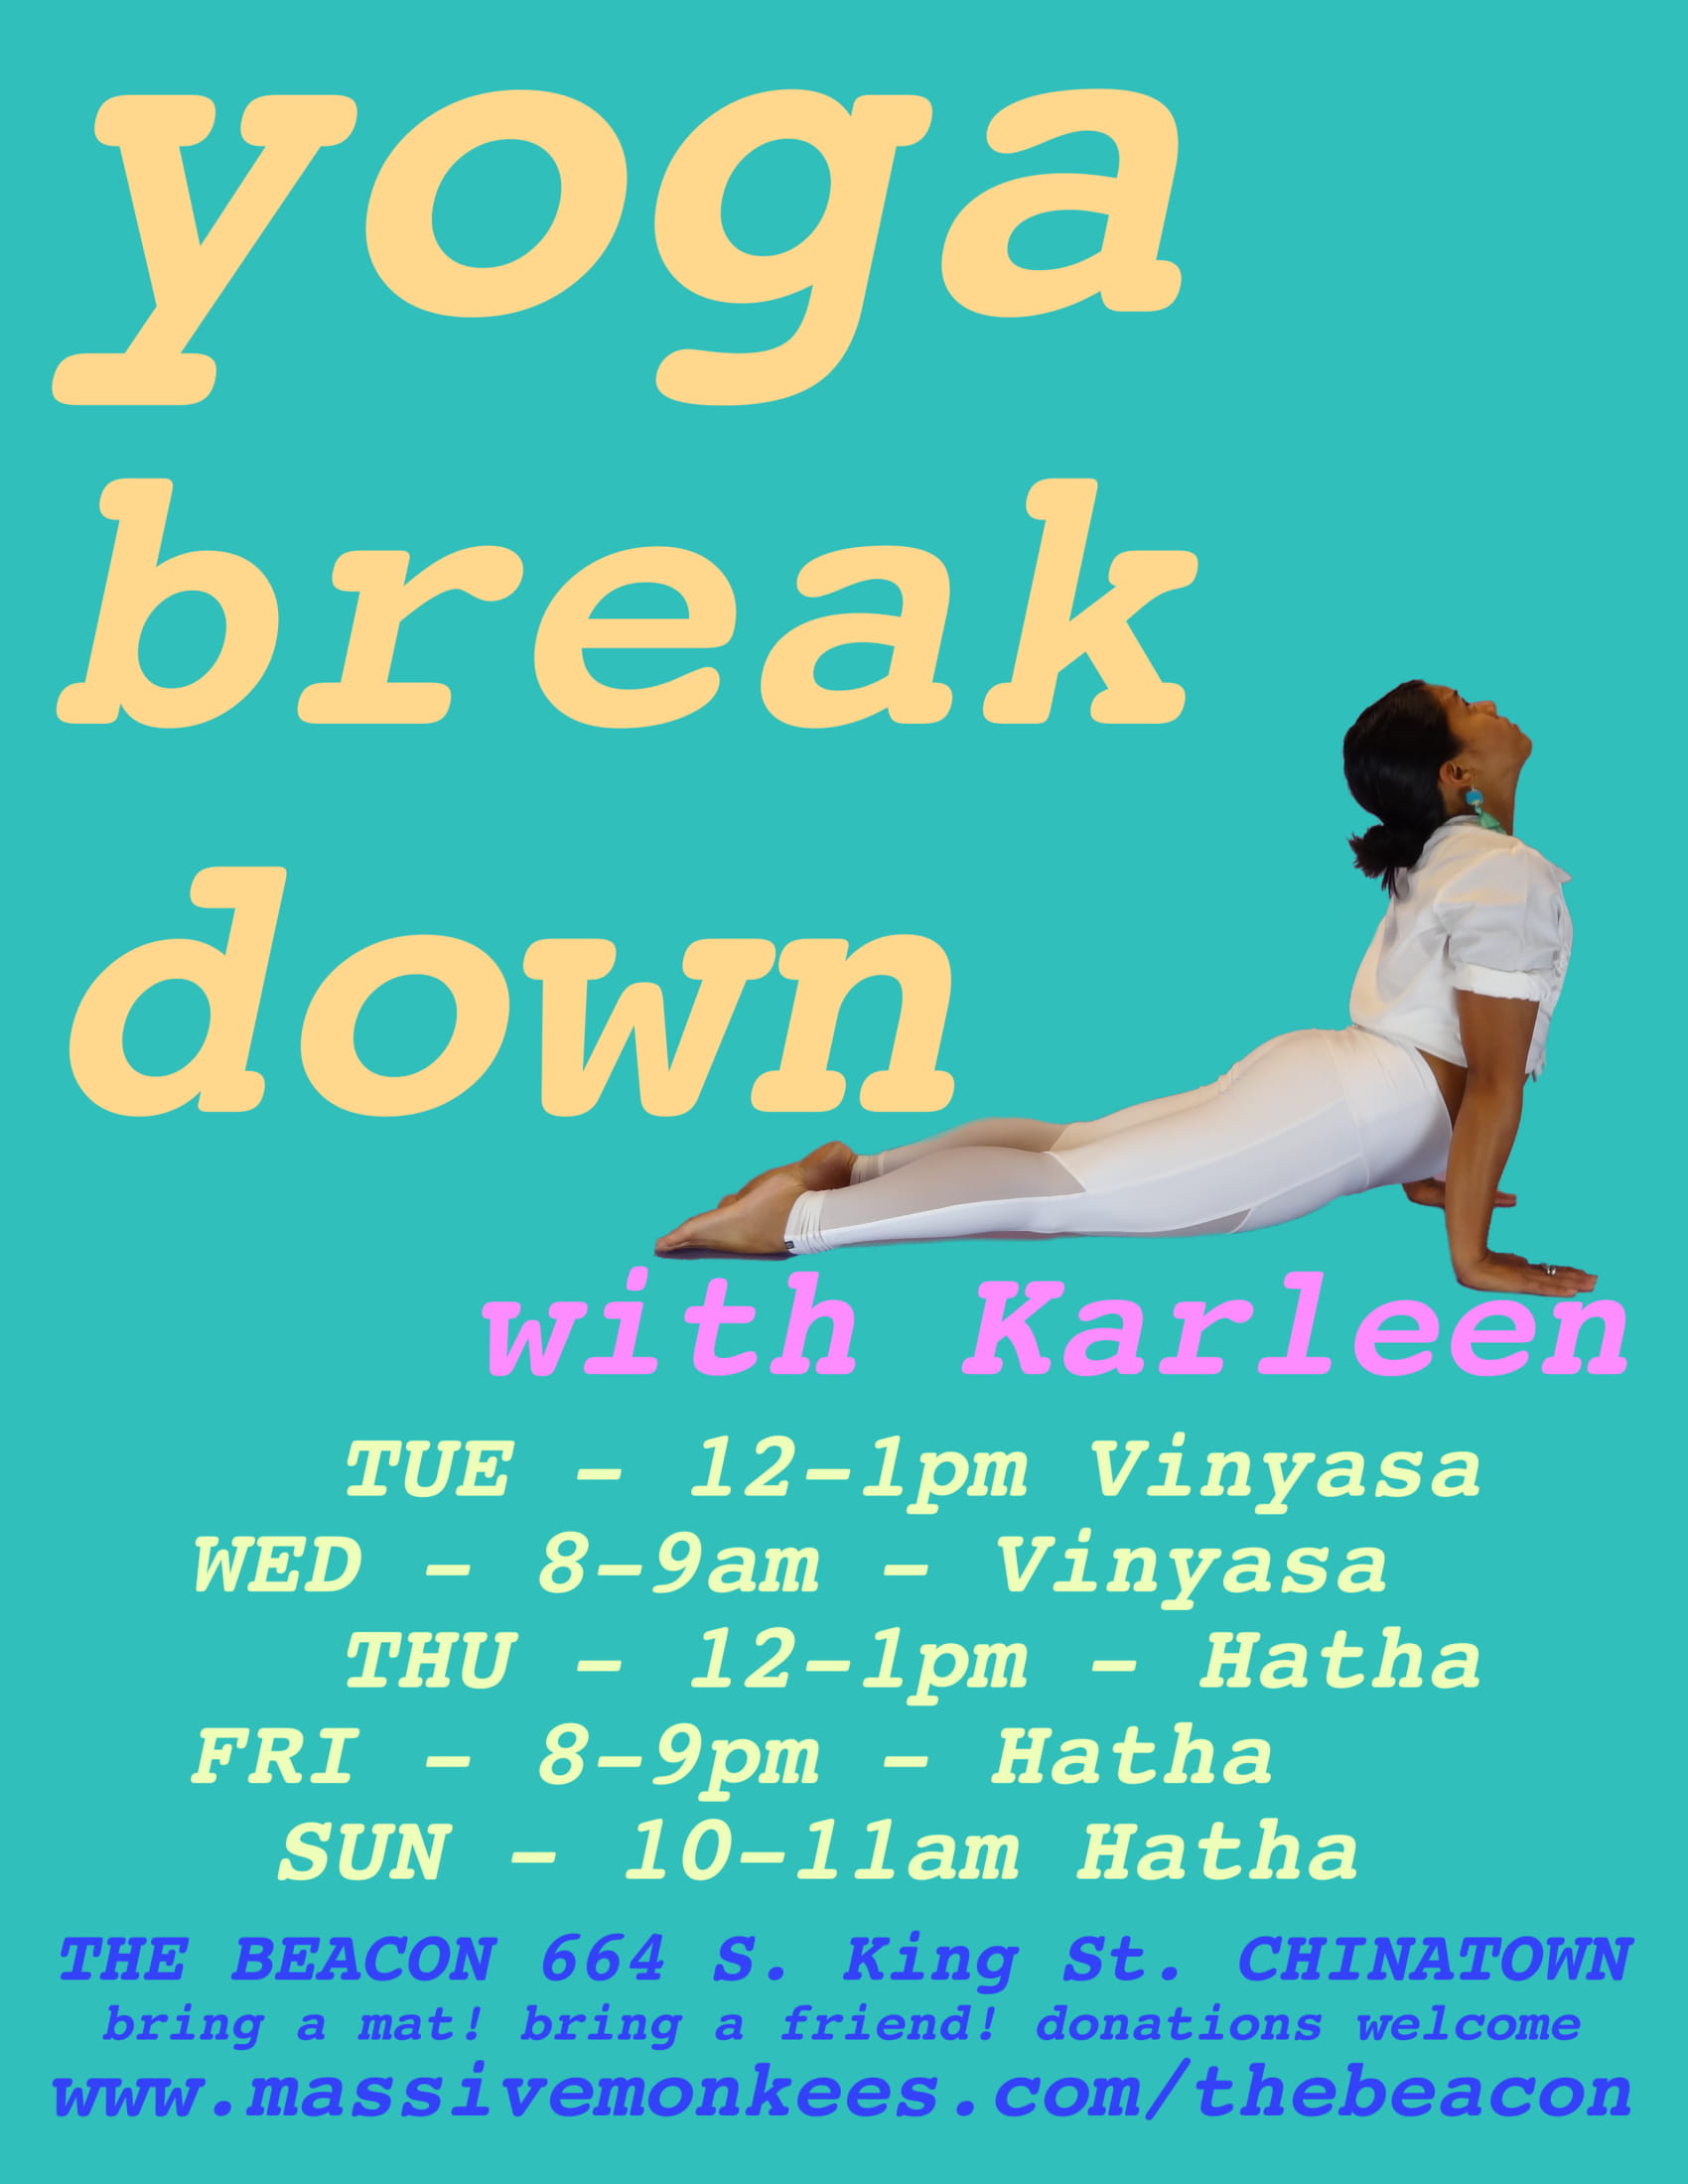 """Yoga Break Down"" (Vinyasa Intermediate/Advanced) w/ Karleen"